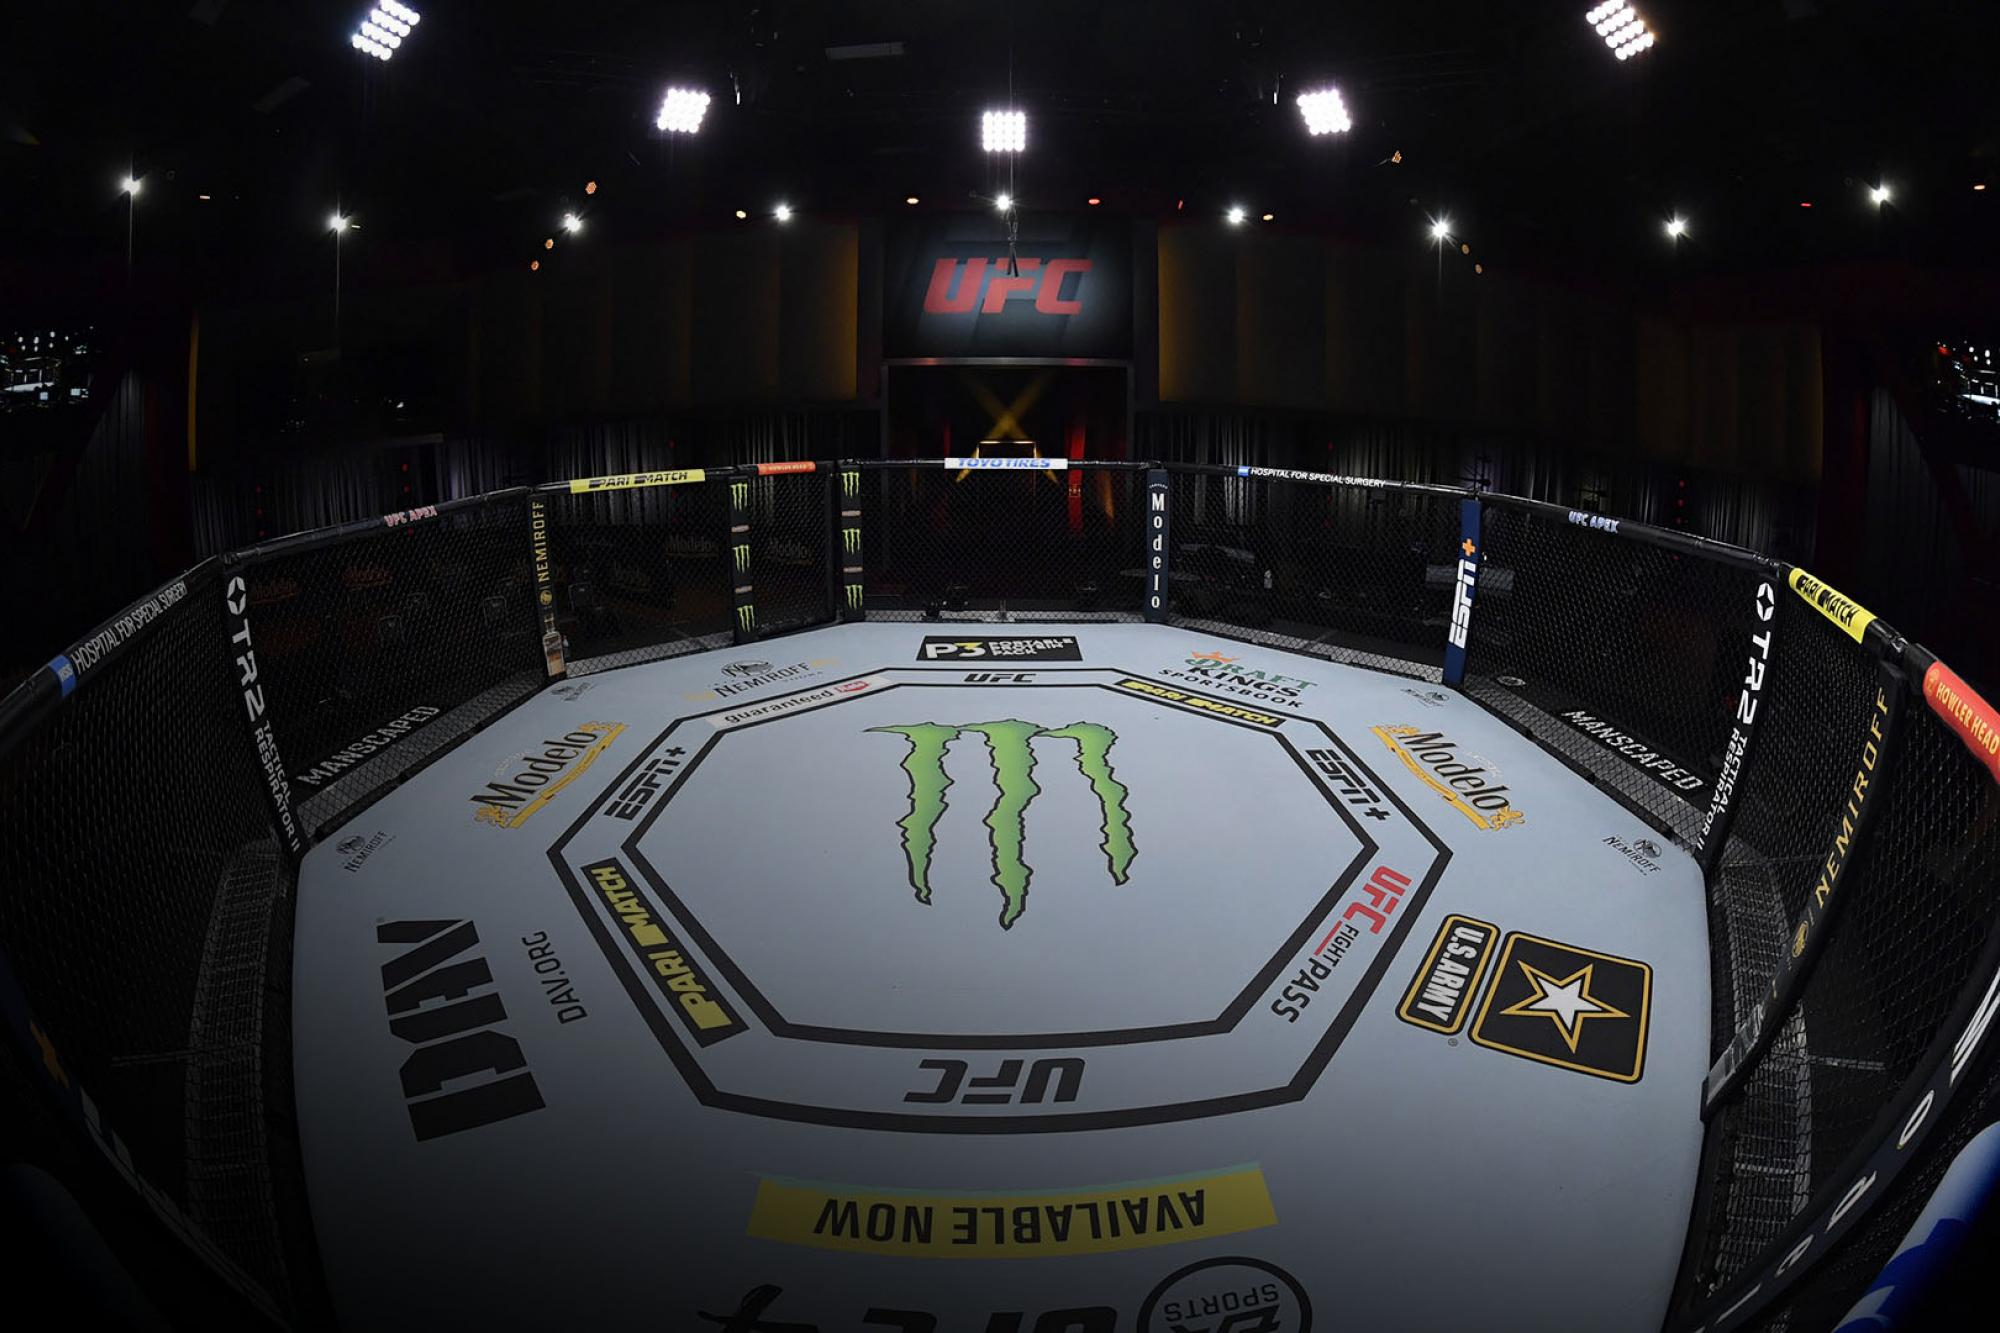 Fight Night Edwards Vs Chimaev Card Announced Ufc 2:00 pm pst check ufc norfolk local time and date location: fight night edwards vs chimaev card